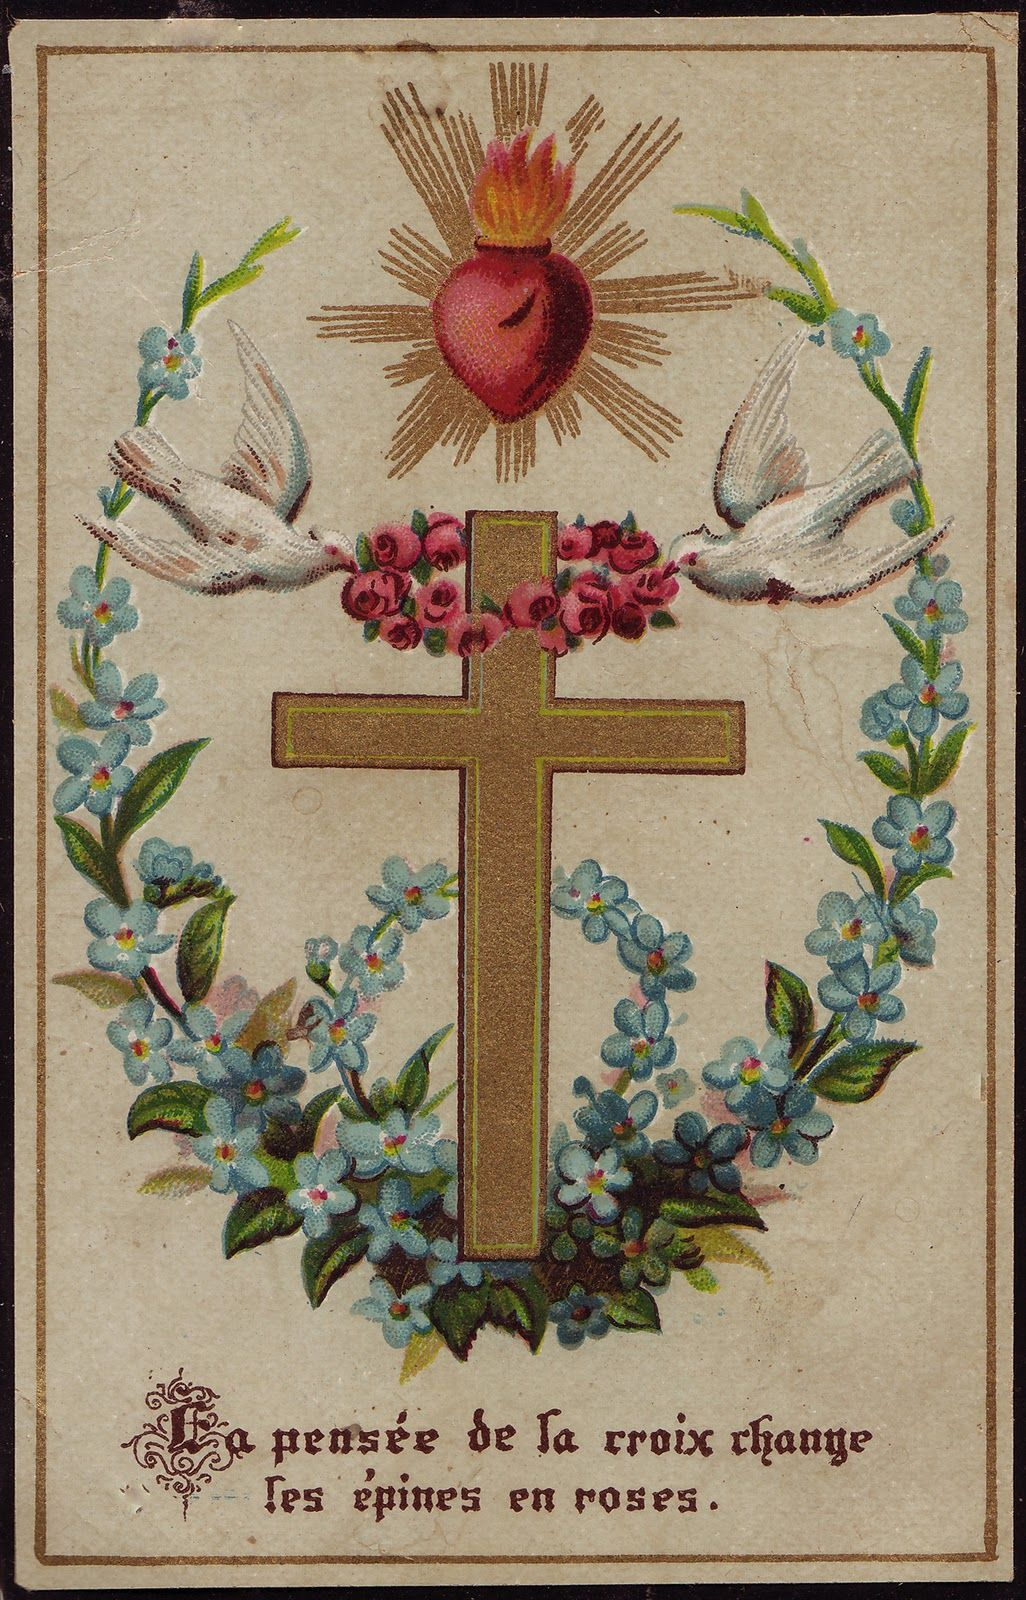 Meditation Of The Cross Changes Thorns Into Roses